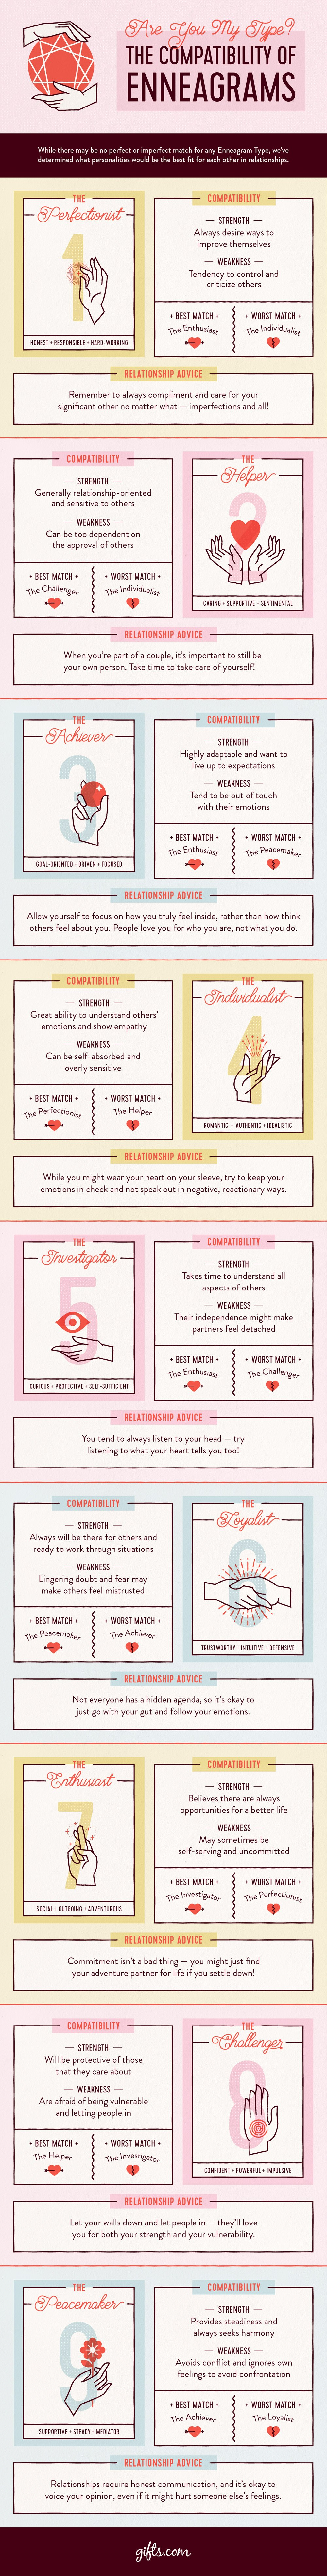 The Compatibility of Enneagram Types in Love